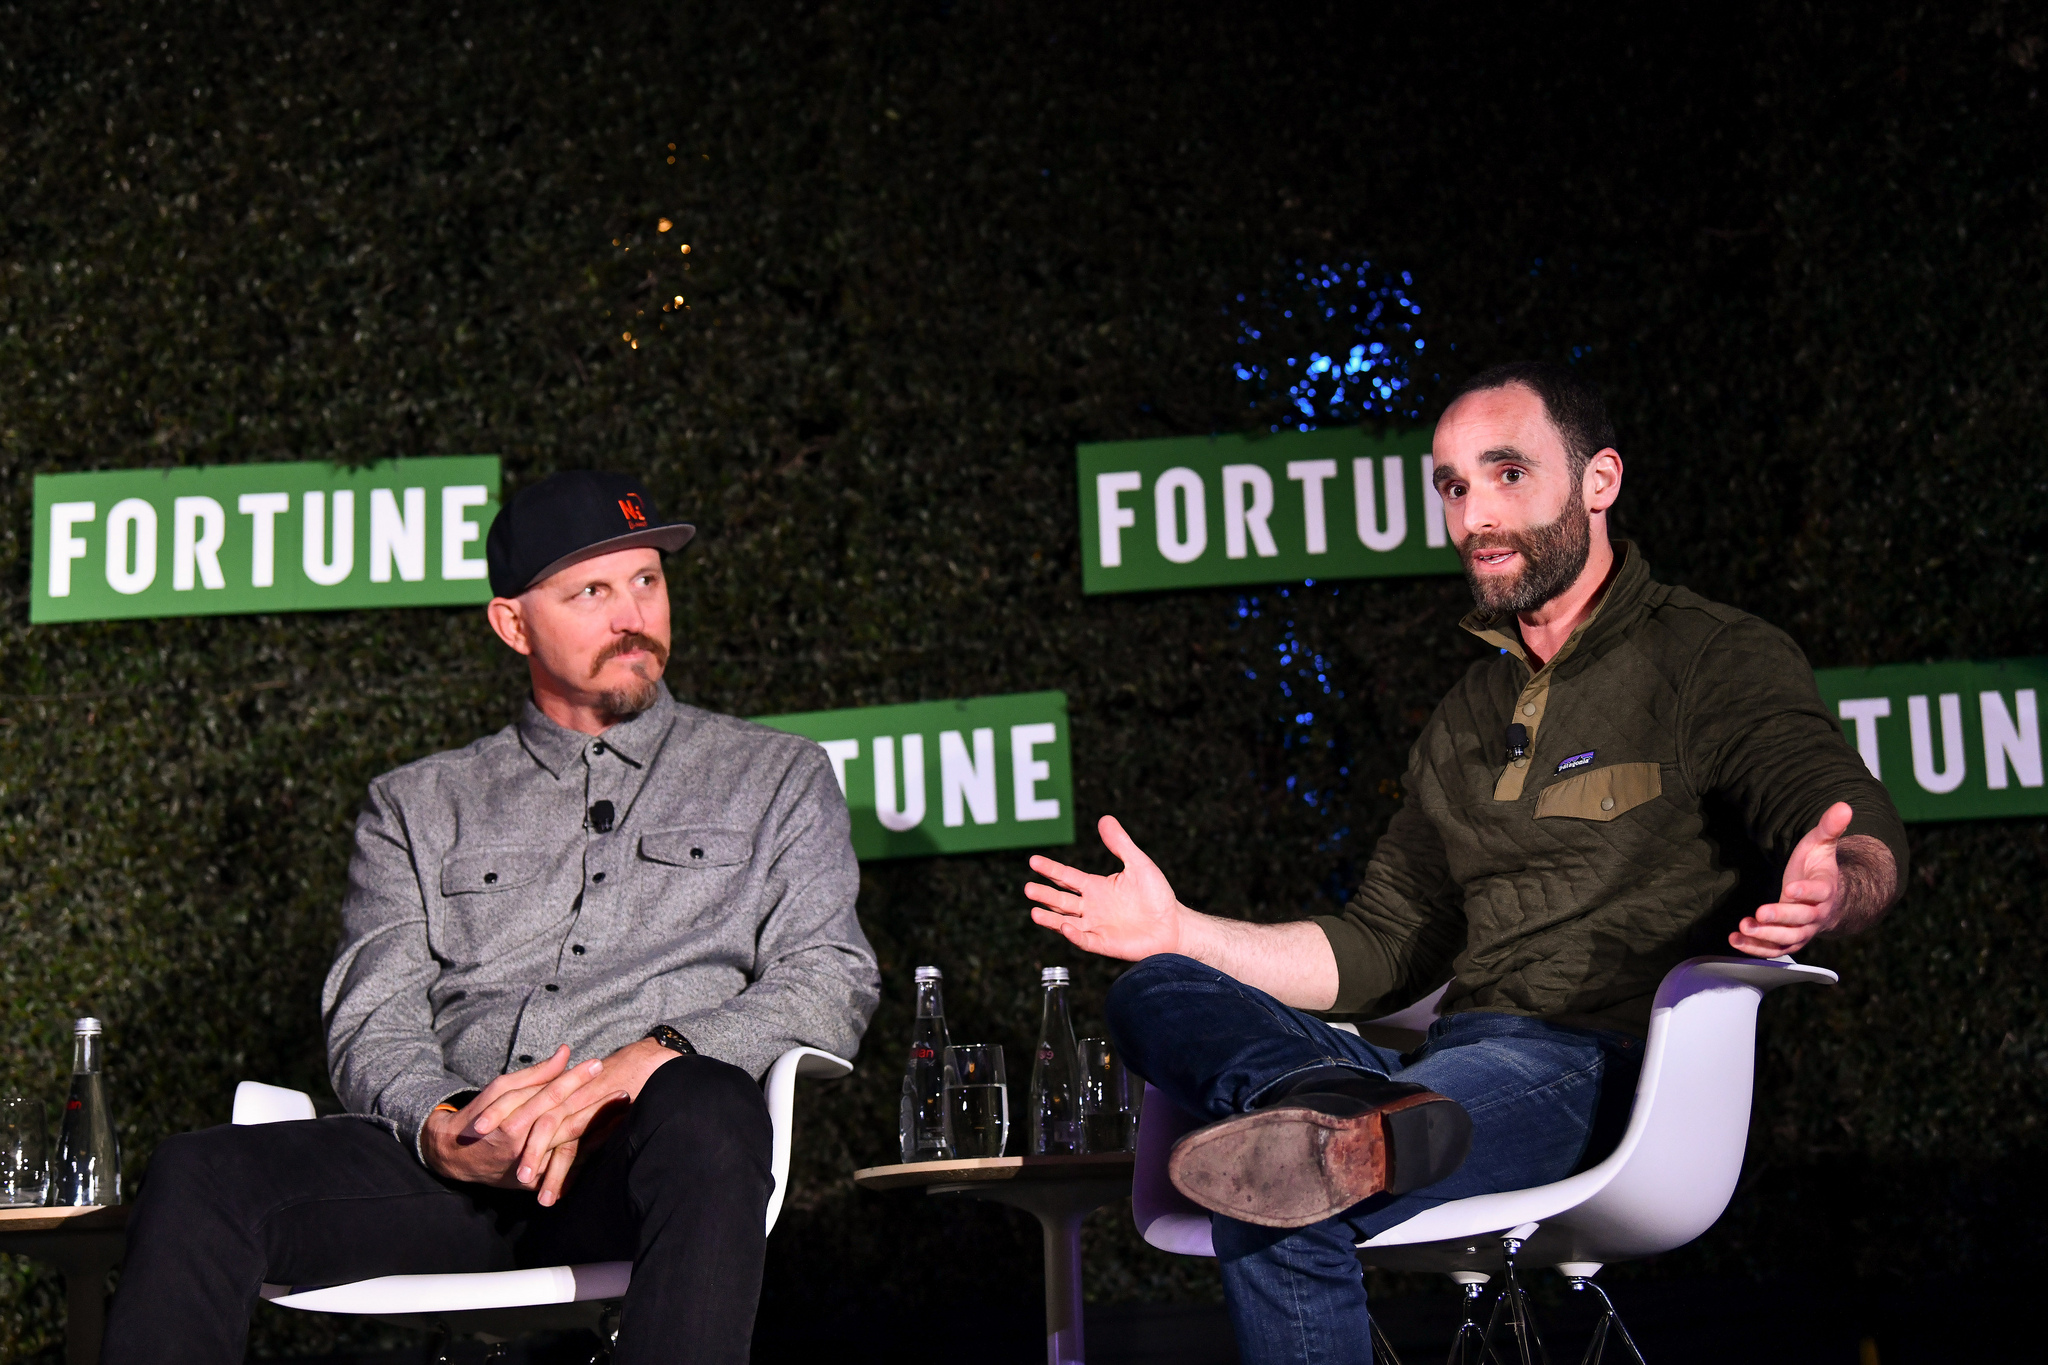 Not Impossible Labs CEO Mick Ebeling and Unreasonable CEO Daniel Epstein speaking at the 2019 Fortune Brainstorm Health conference in San Diego.